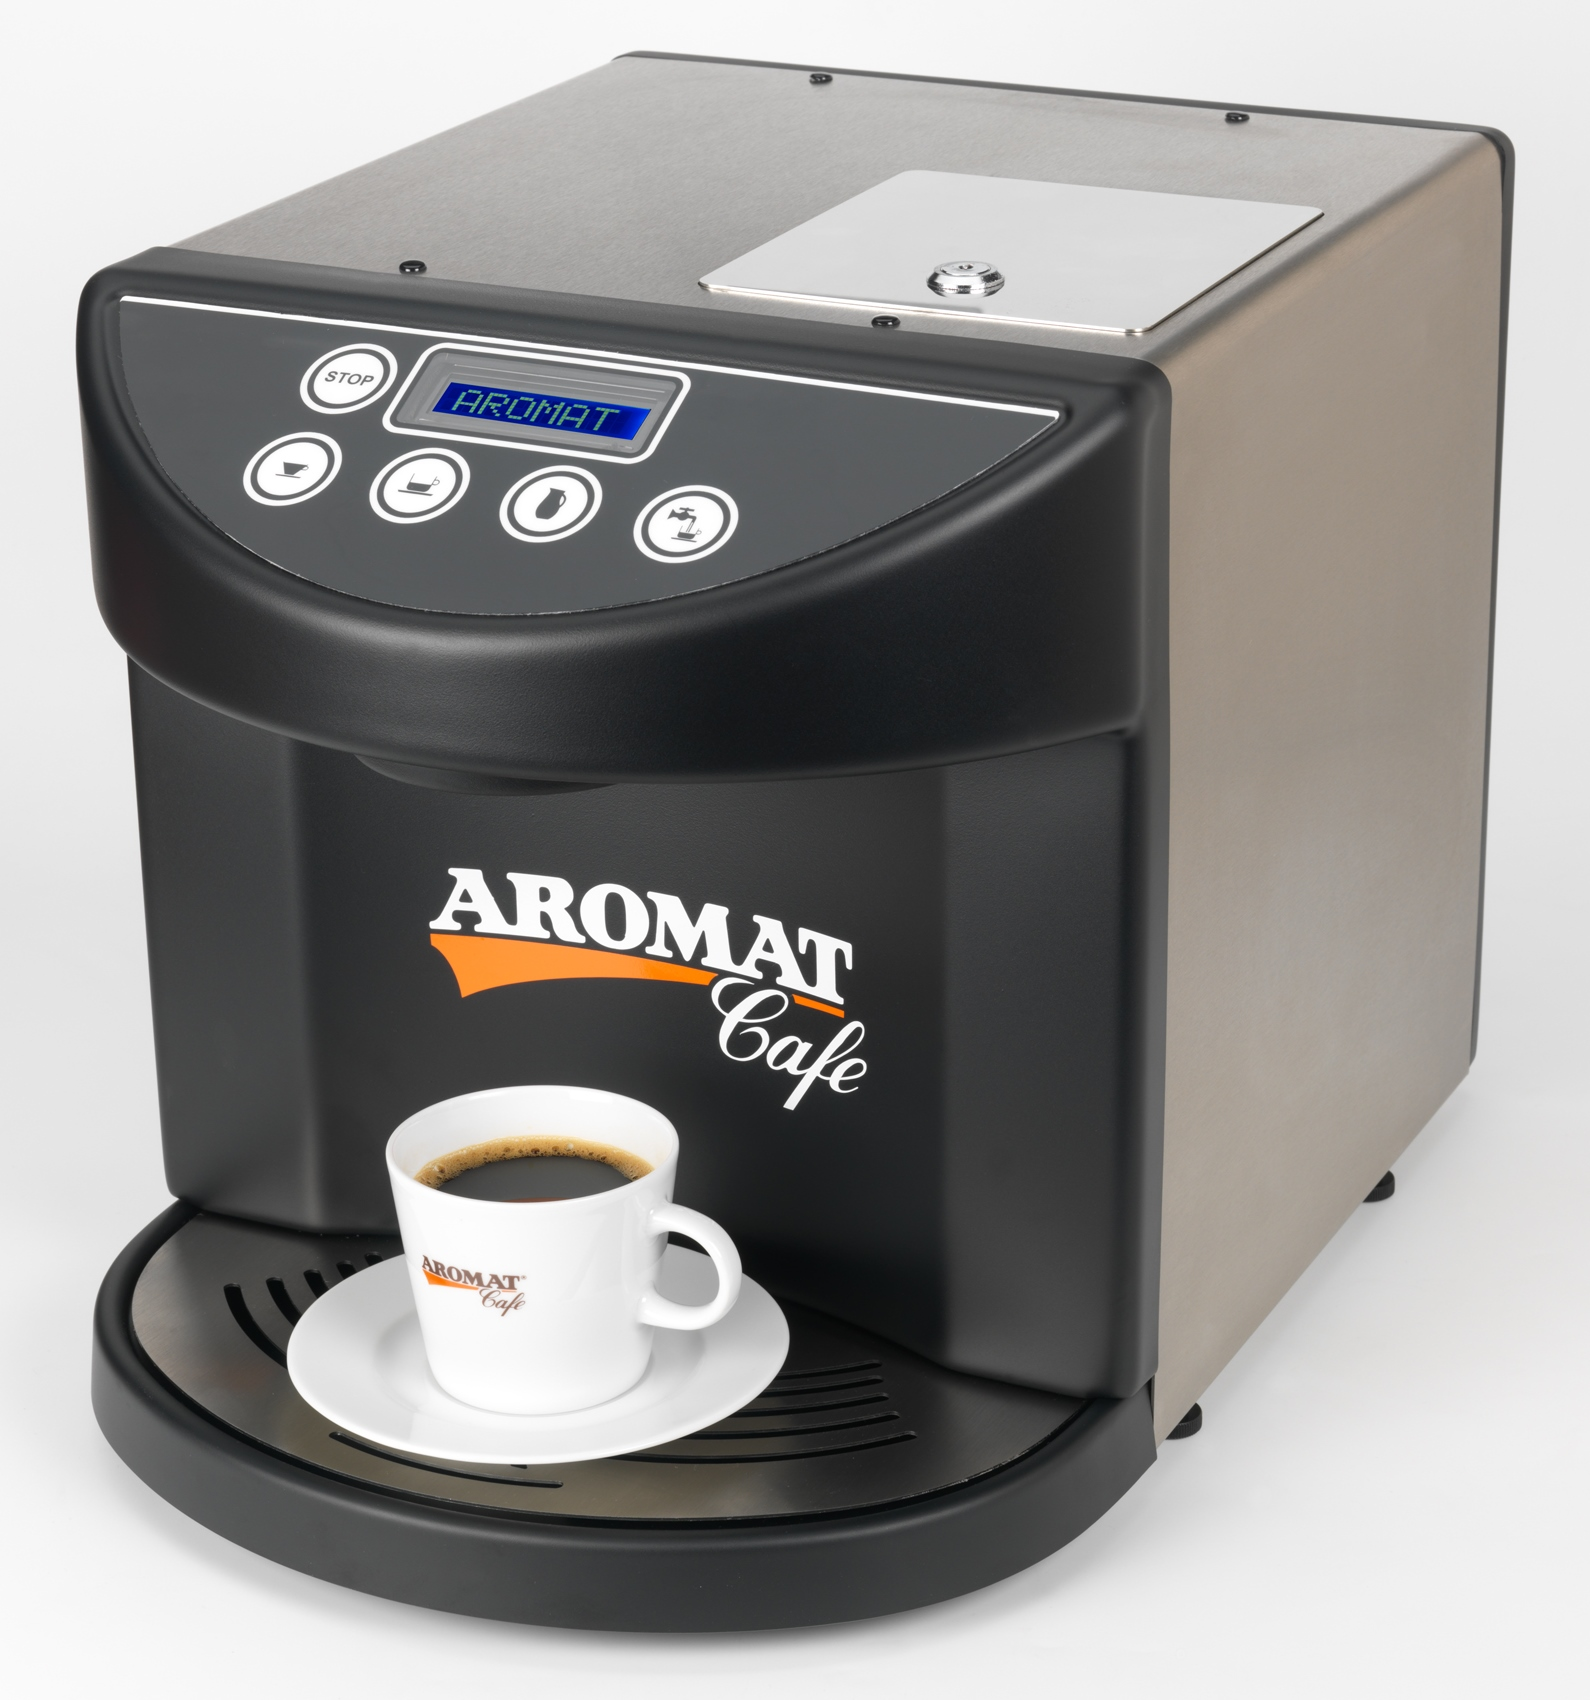 The AROMAT OLC1 is a commercial liquid coffee machine which is using the AROMAT liquid coffee concentrates. It is compac